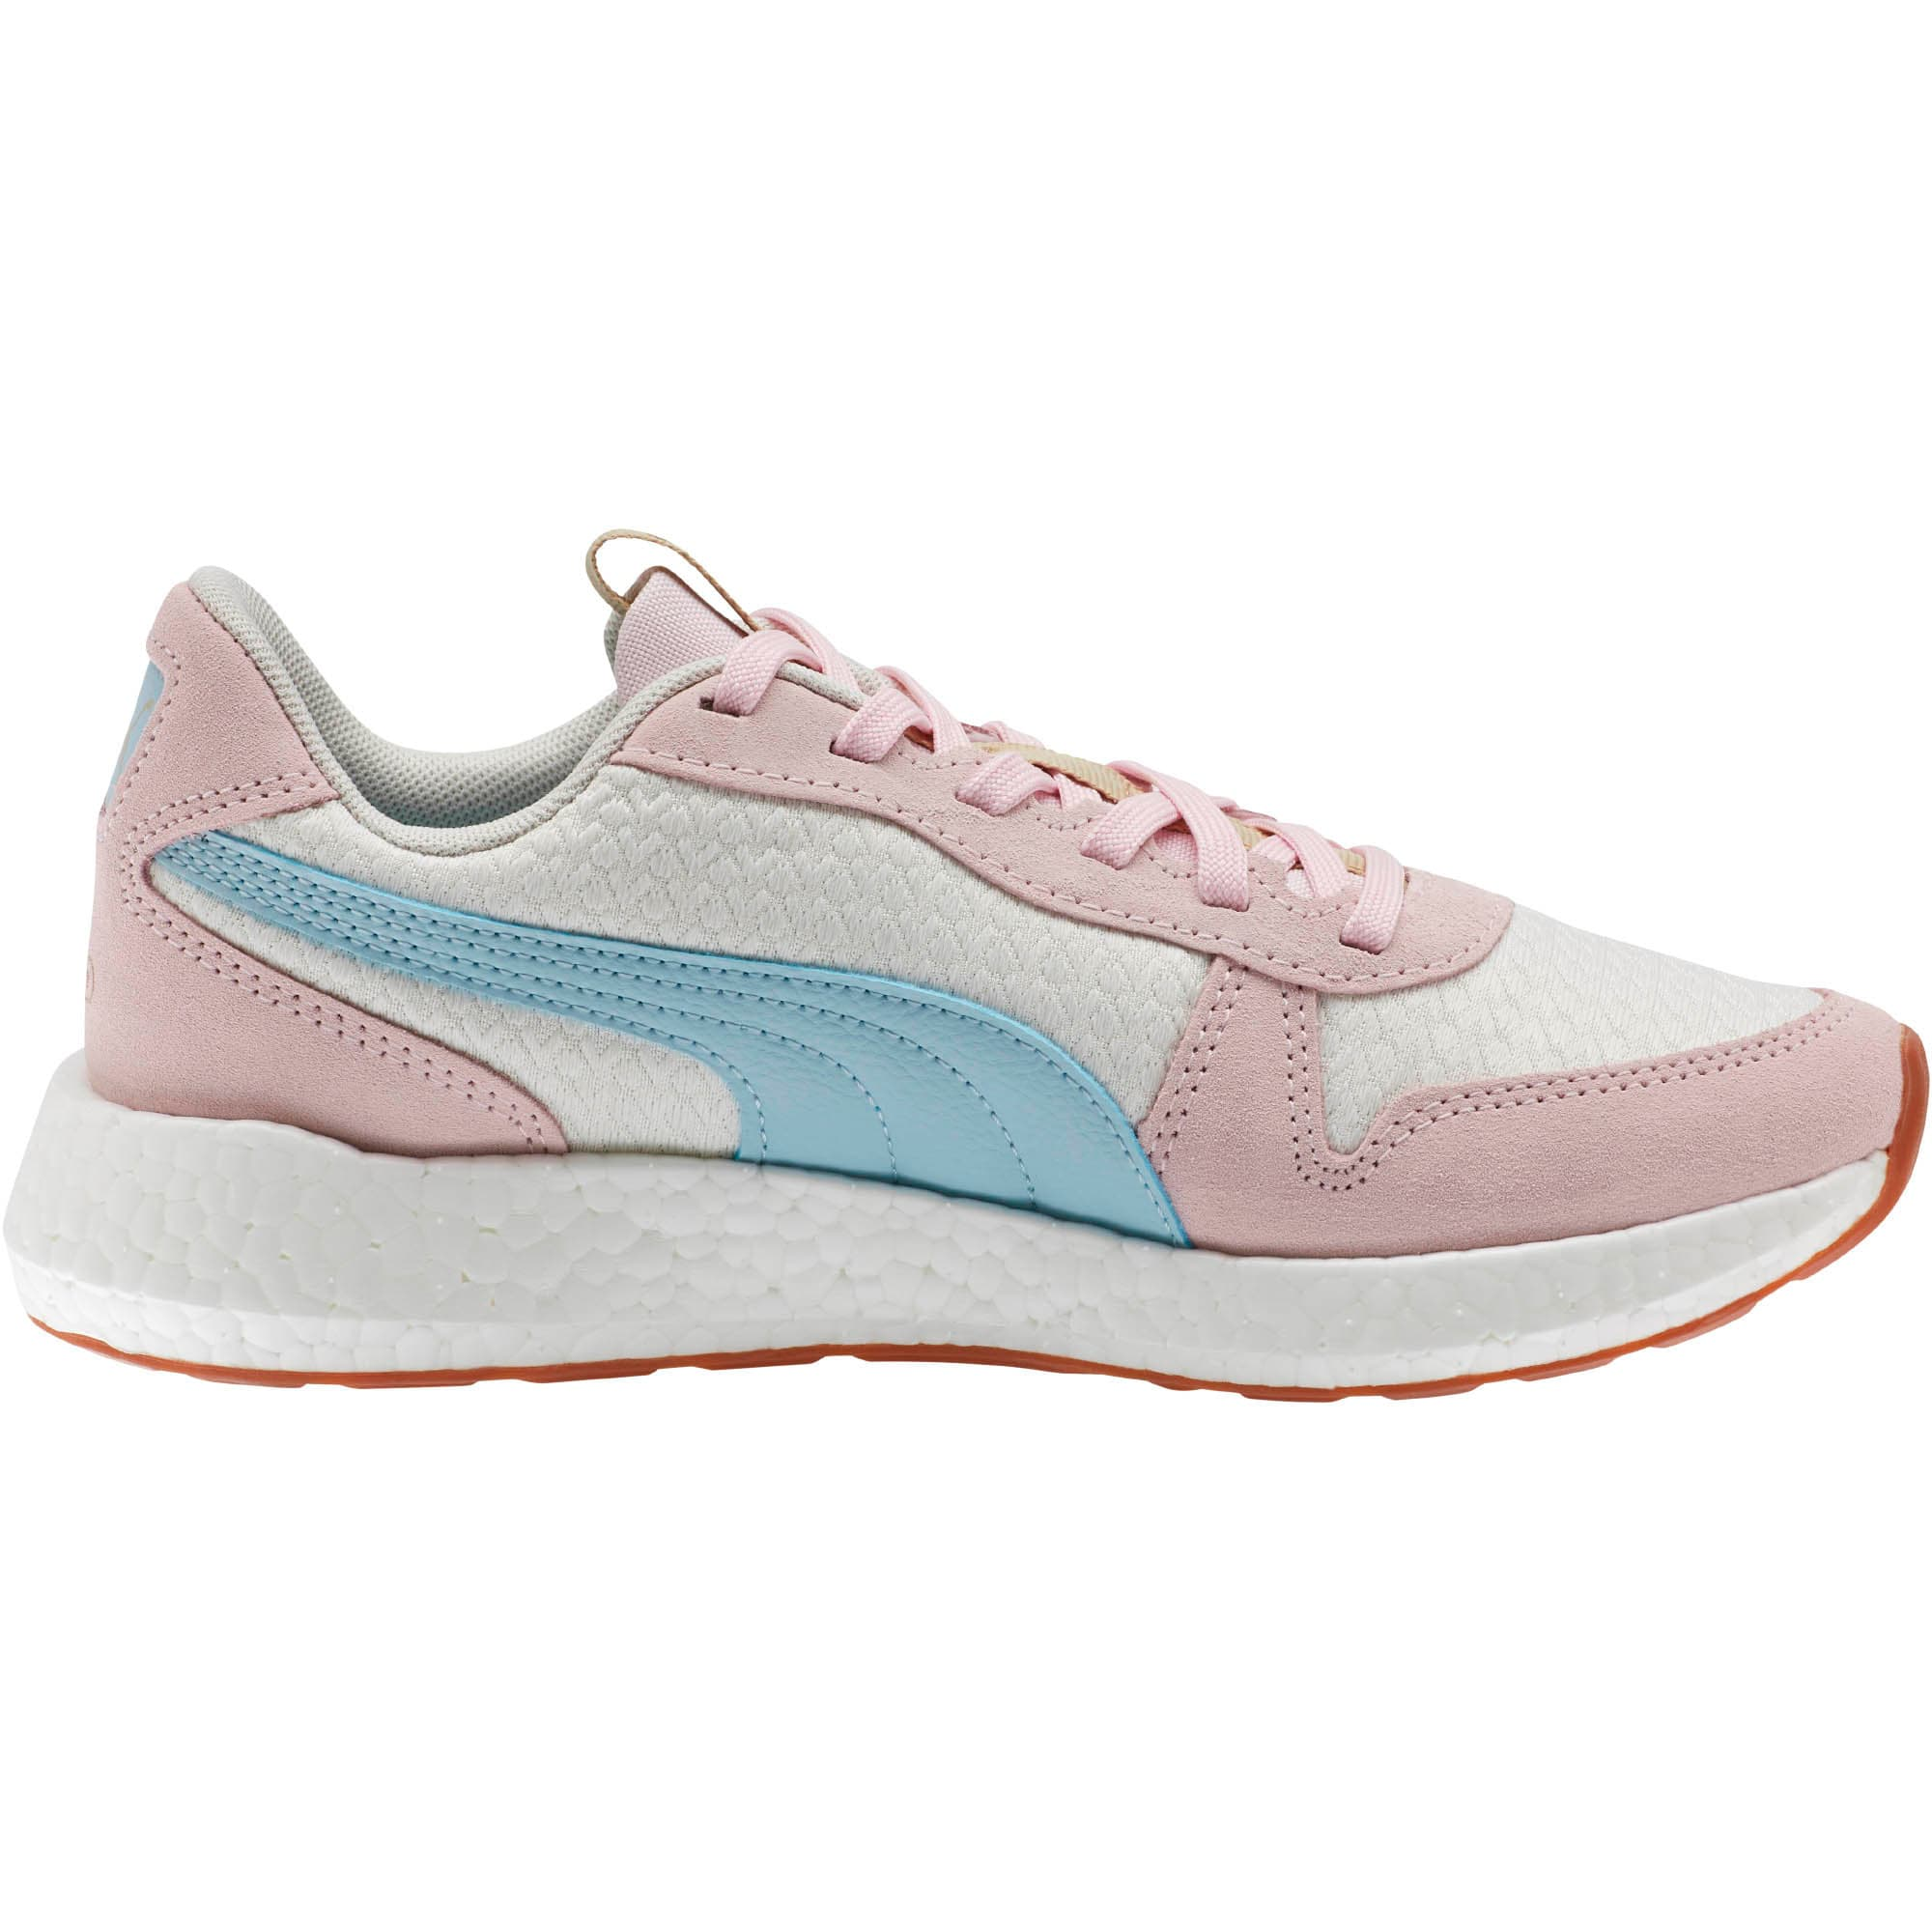 Thumbnail 4 of NRGY Neko Retro Sweet Women's Street Running Shoes, Whisper White-Pink-Sky, medium